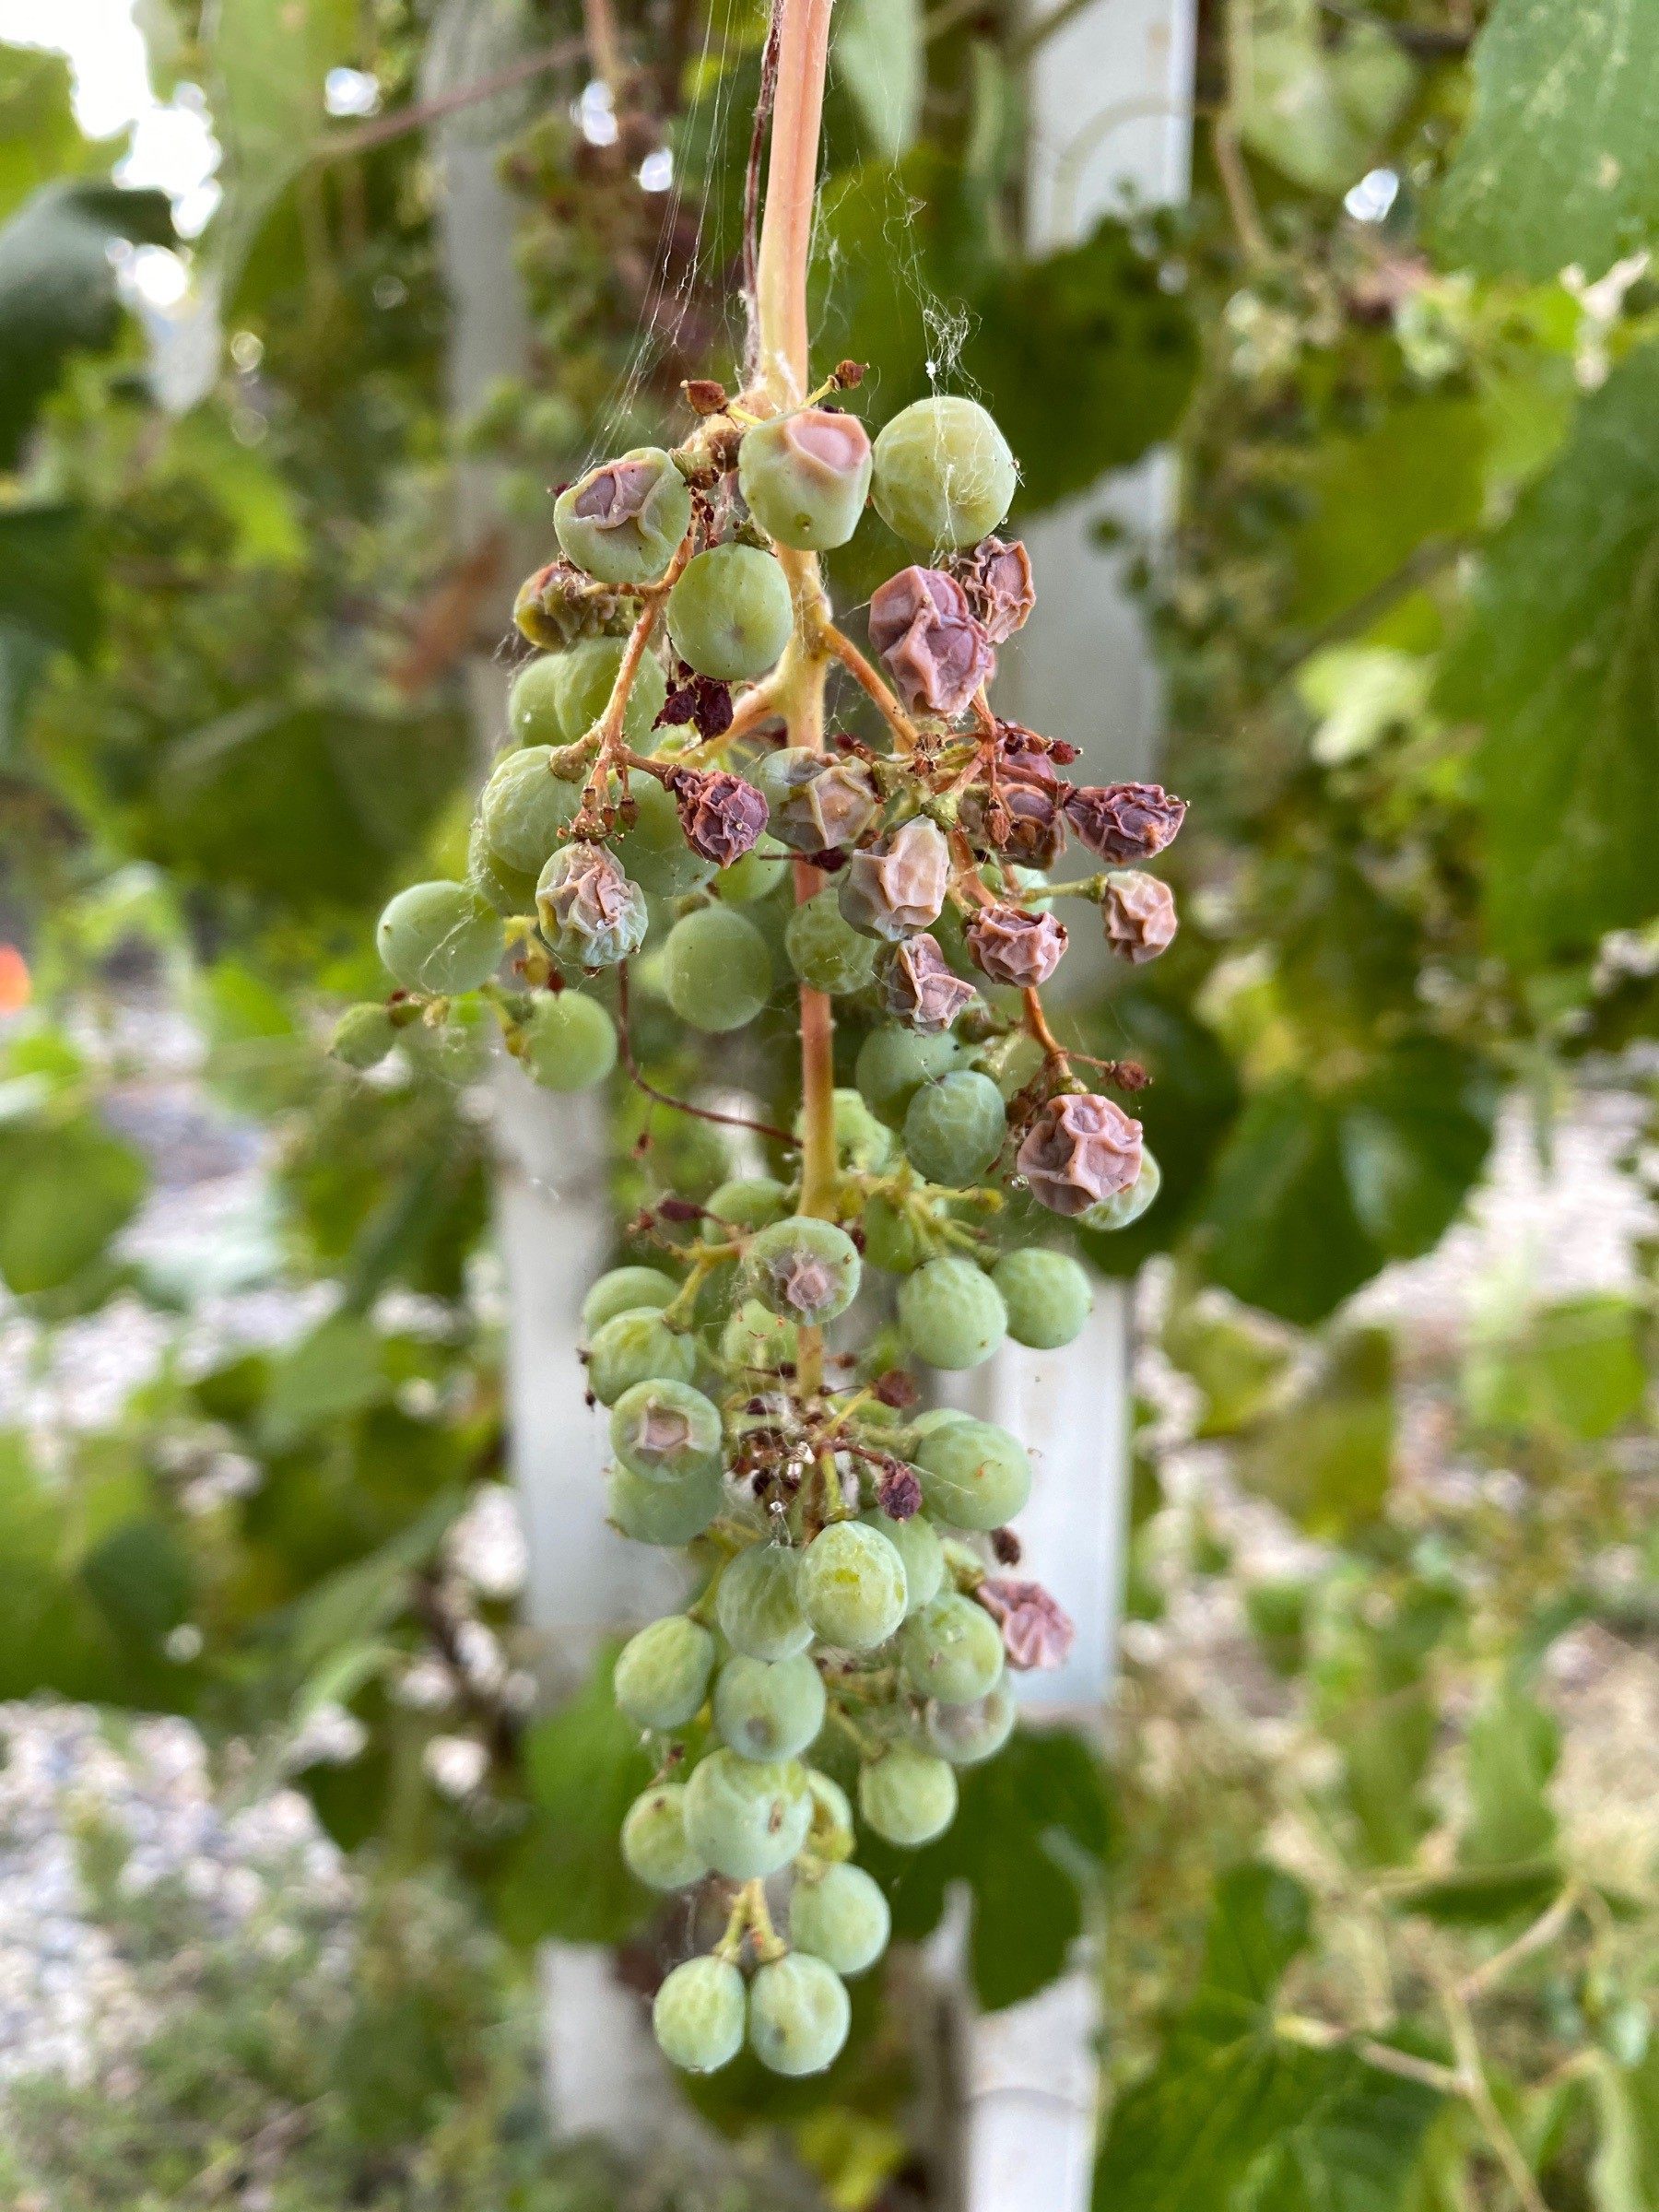 cultivated native California grapes turning to raisins